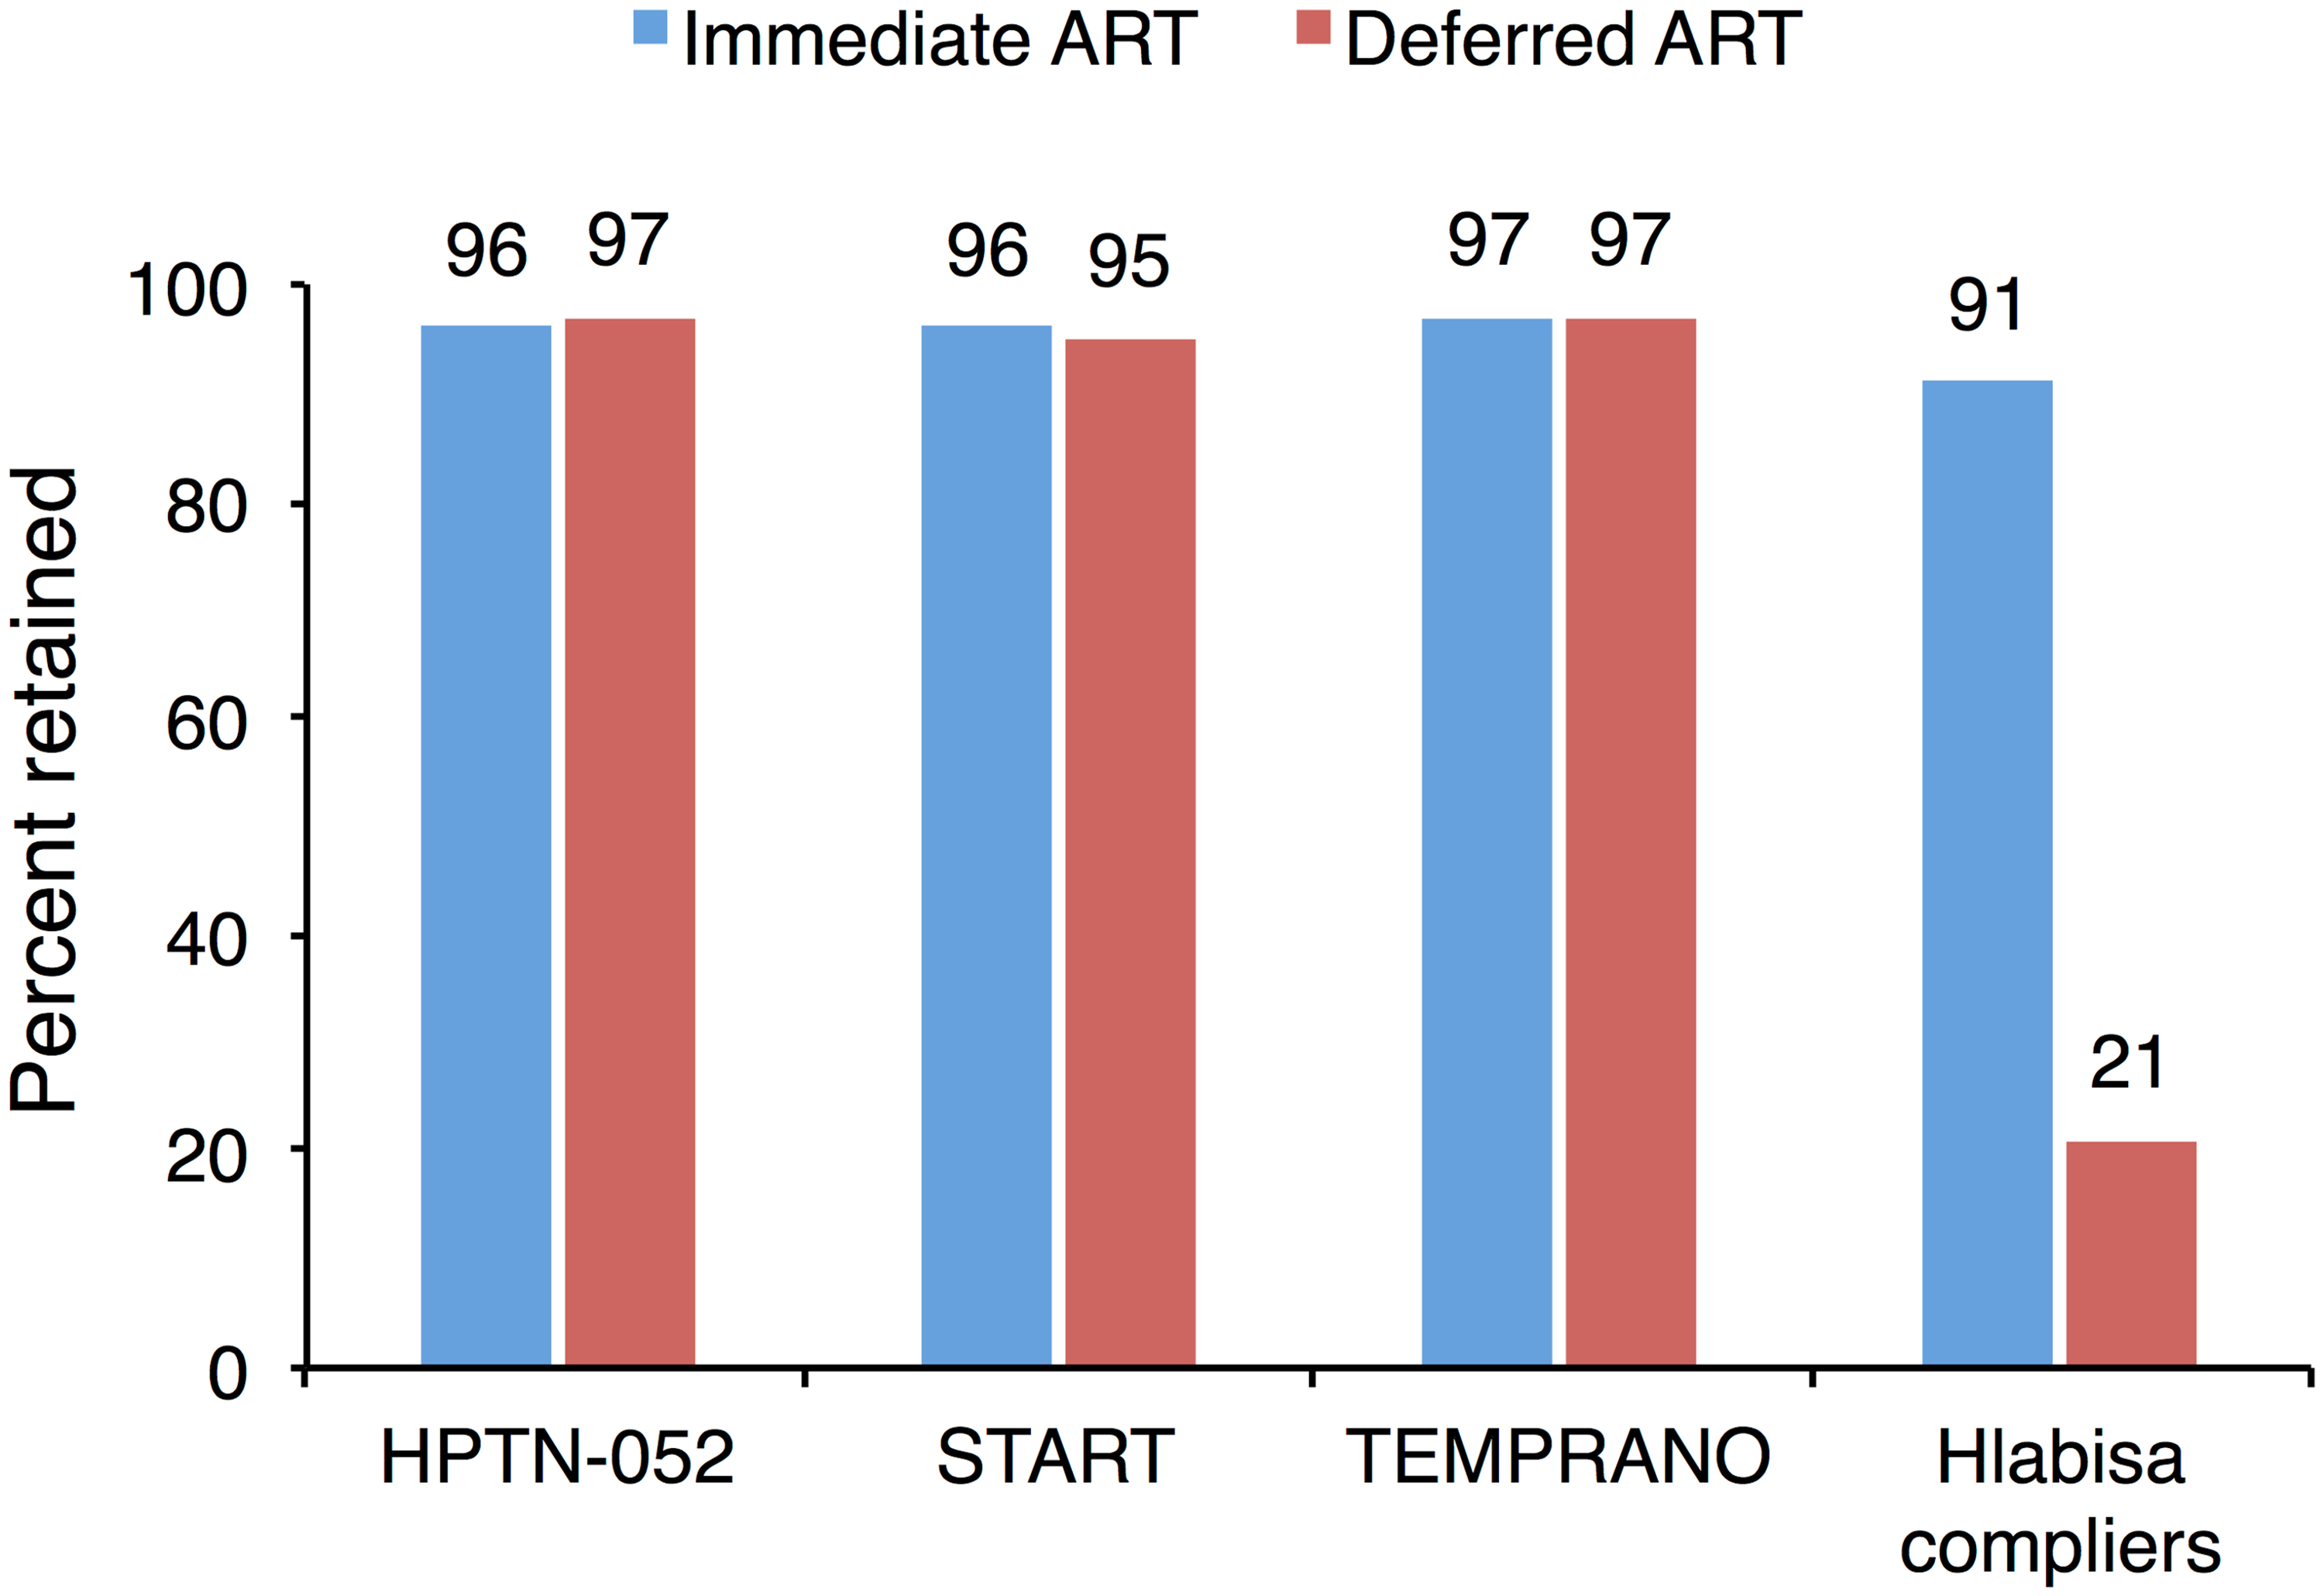 The effect of immediate ART on retention is not observed in clinical trials.